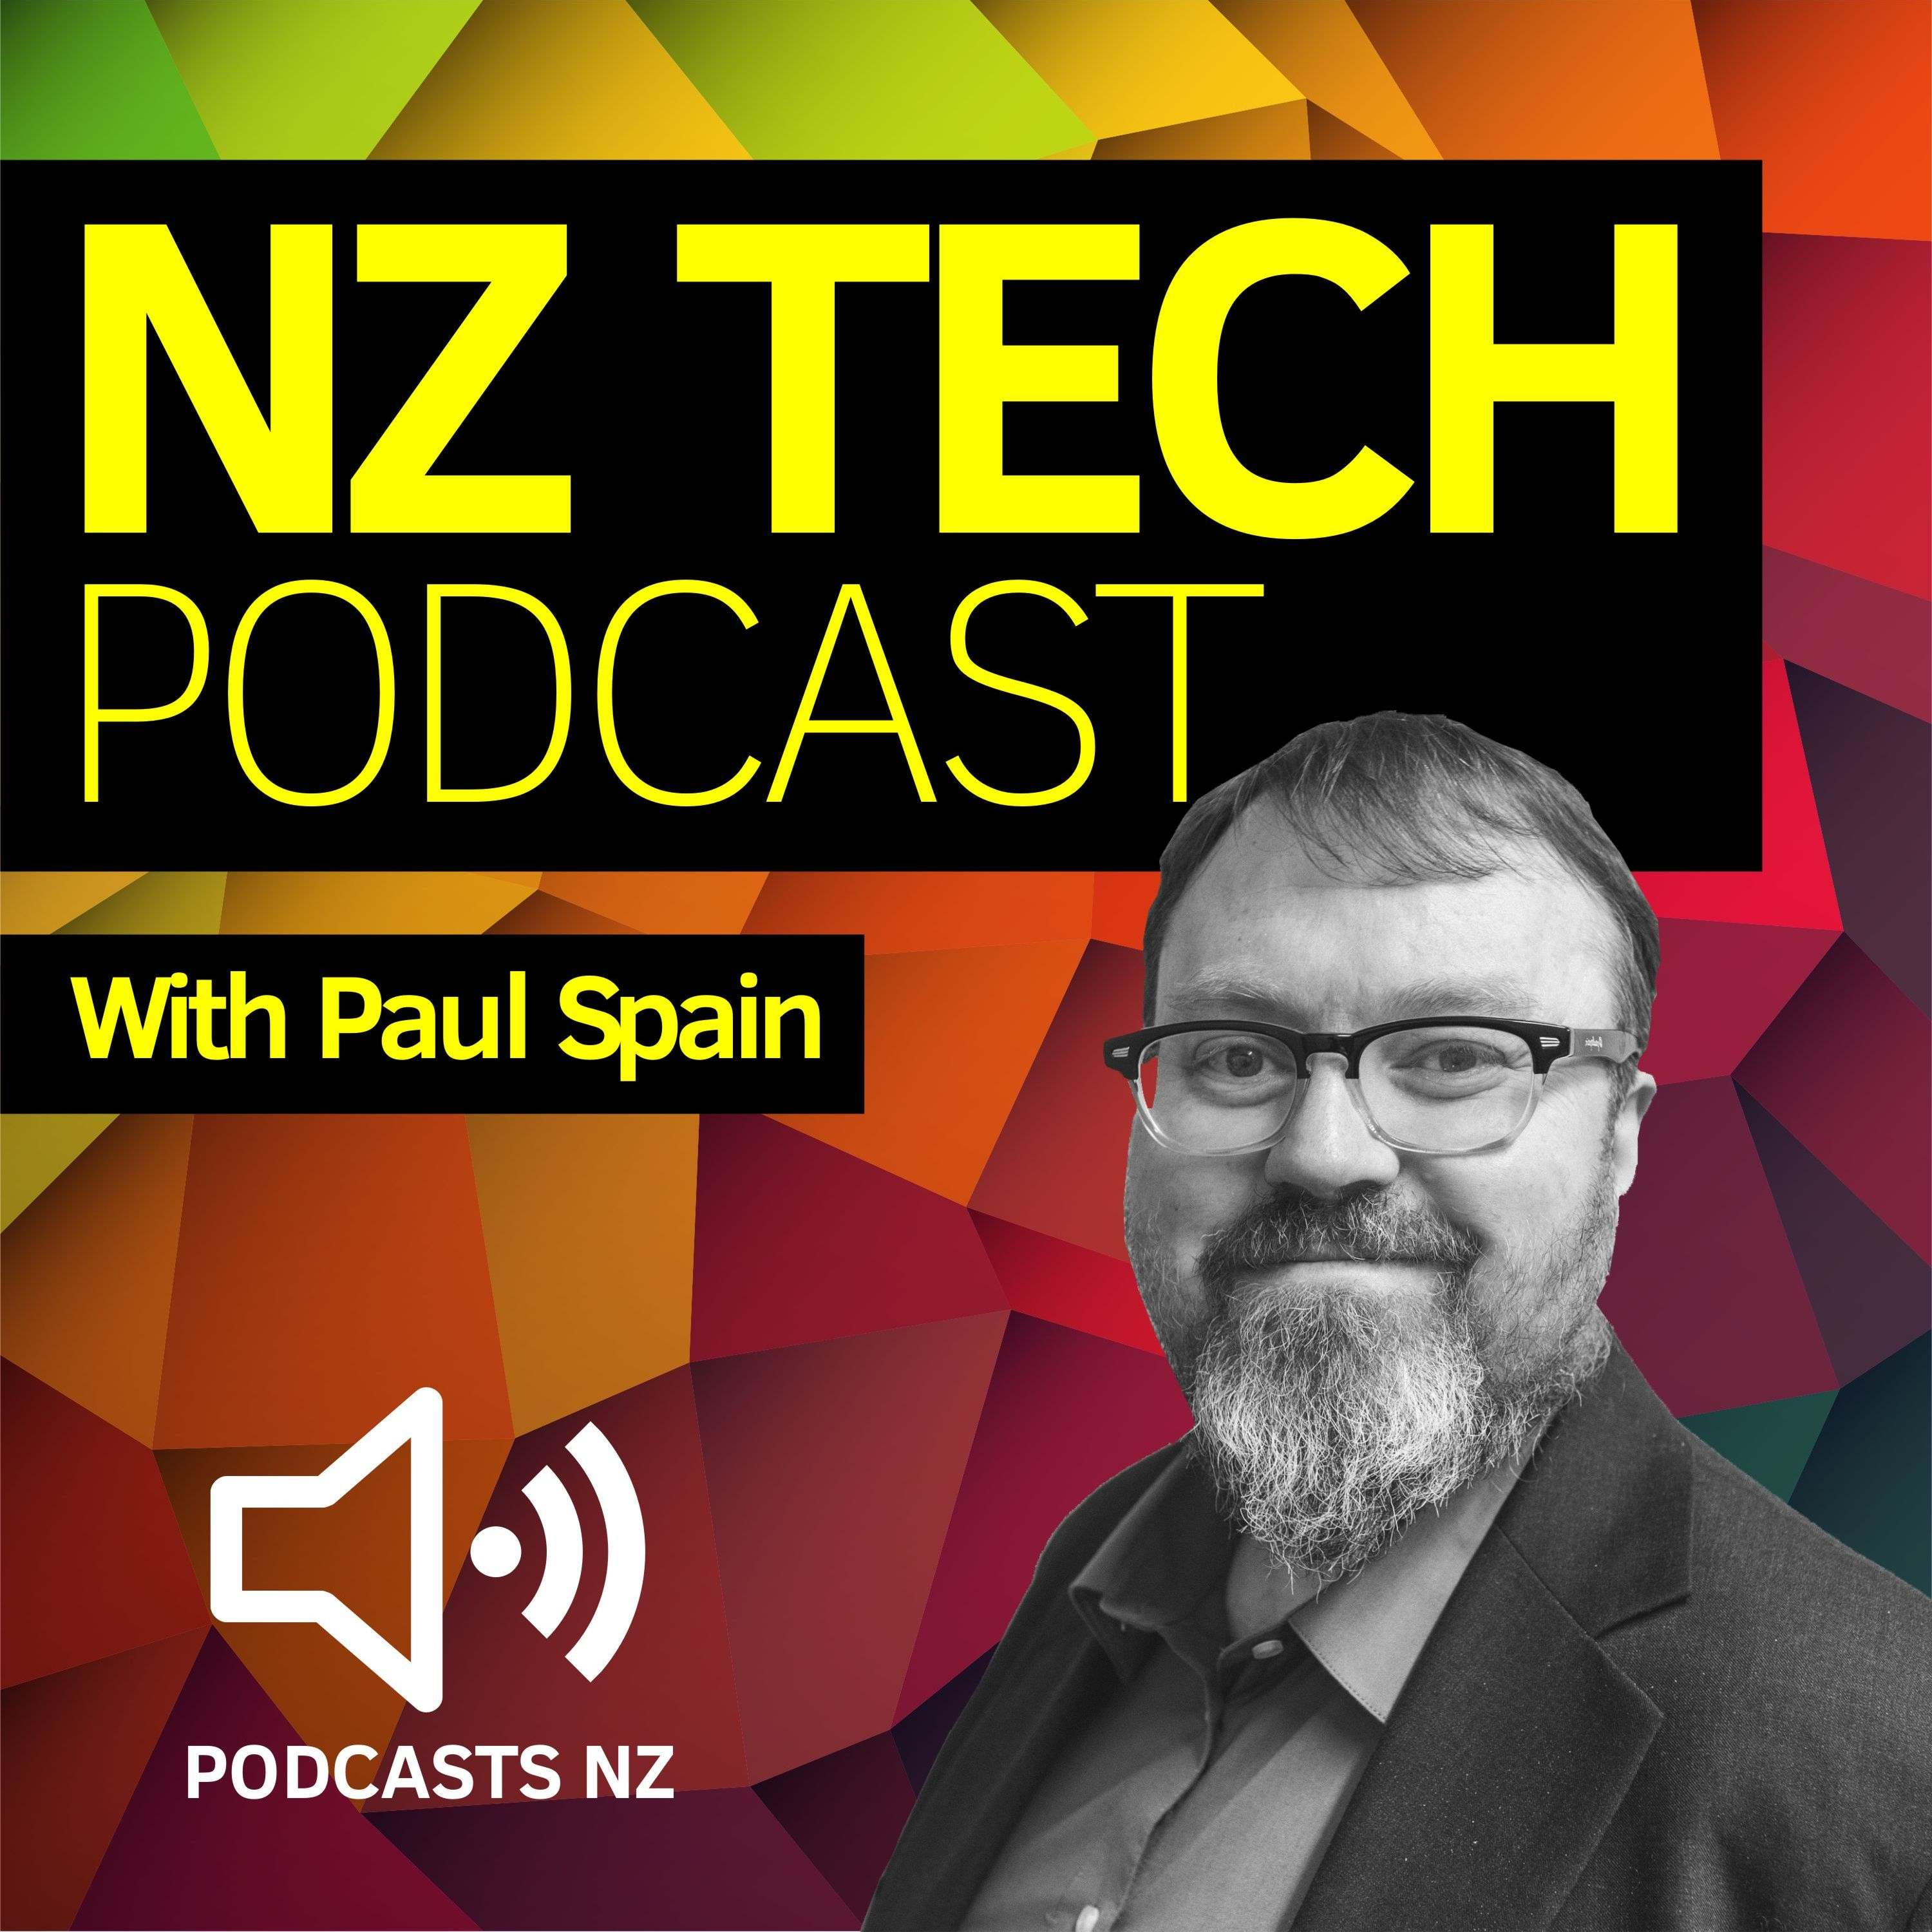 NZ Tech Podcast - with Paul Spain show art